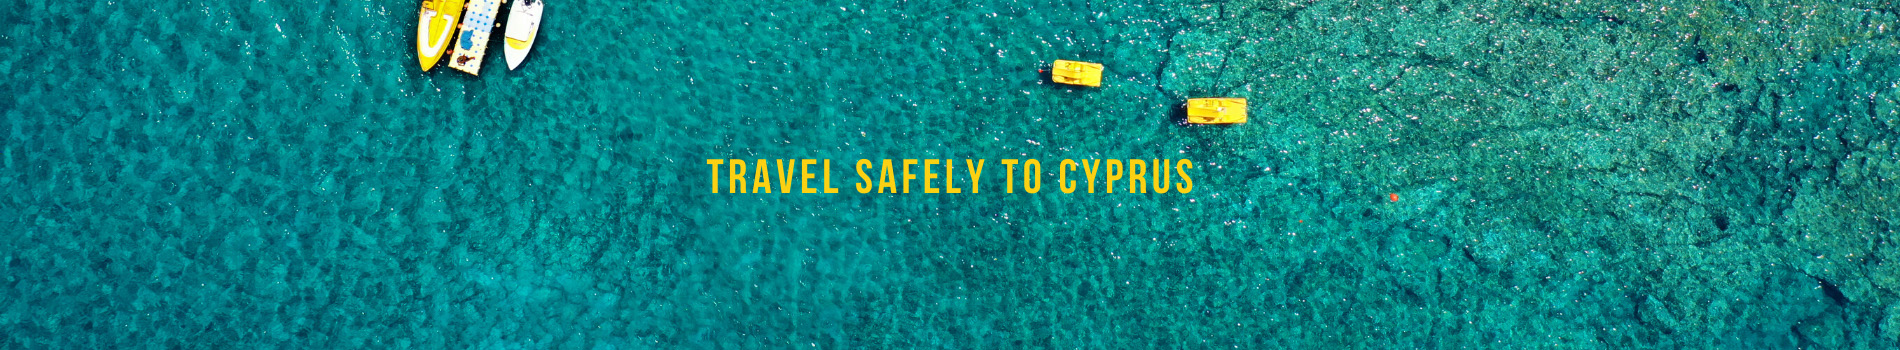 Travel Safely to Cyprus